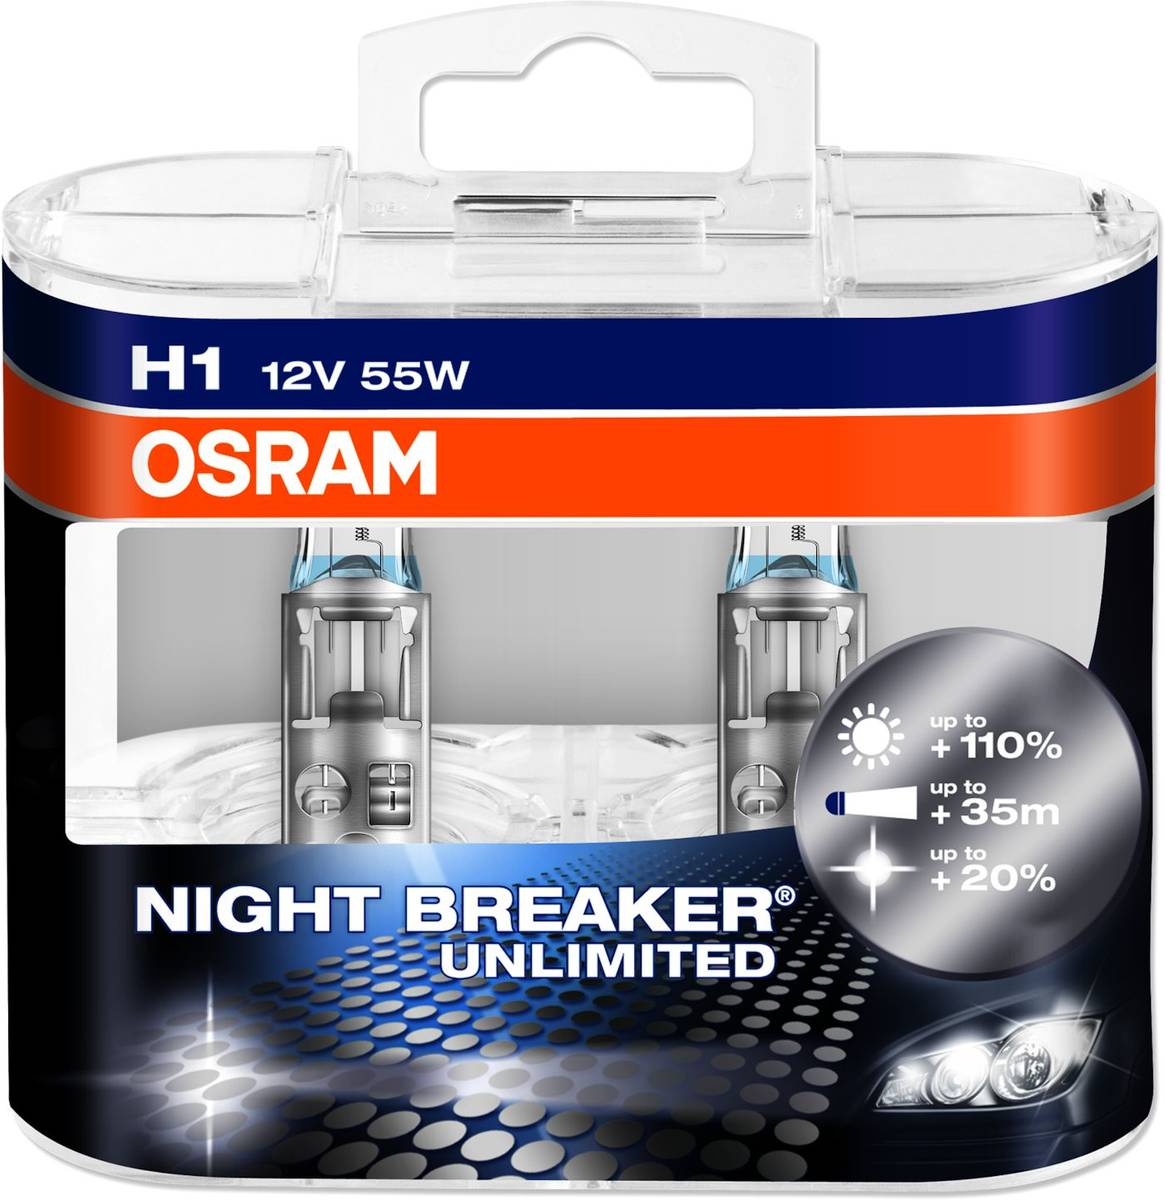 h1 osram night breaker unlimited 110 55w 12v 55w 12v. Black Bedroom Furniture Sets. Home Design Ideas